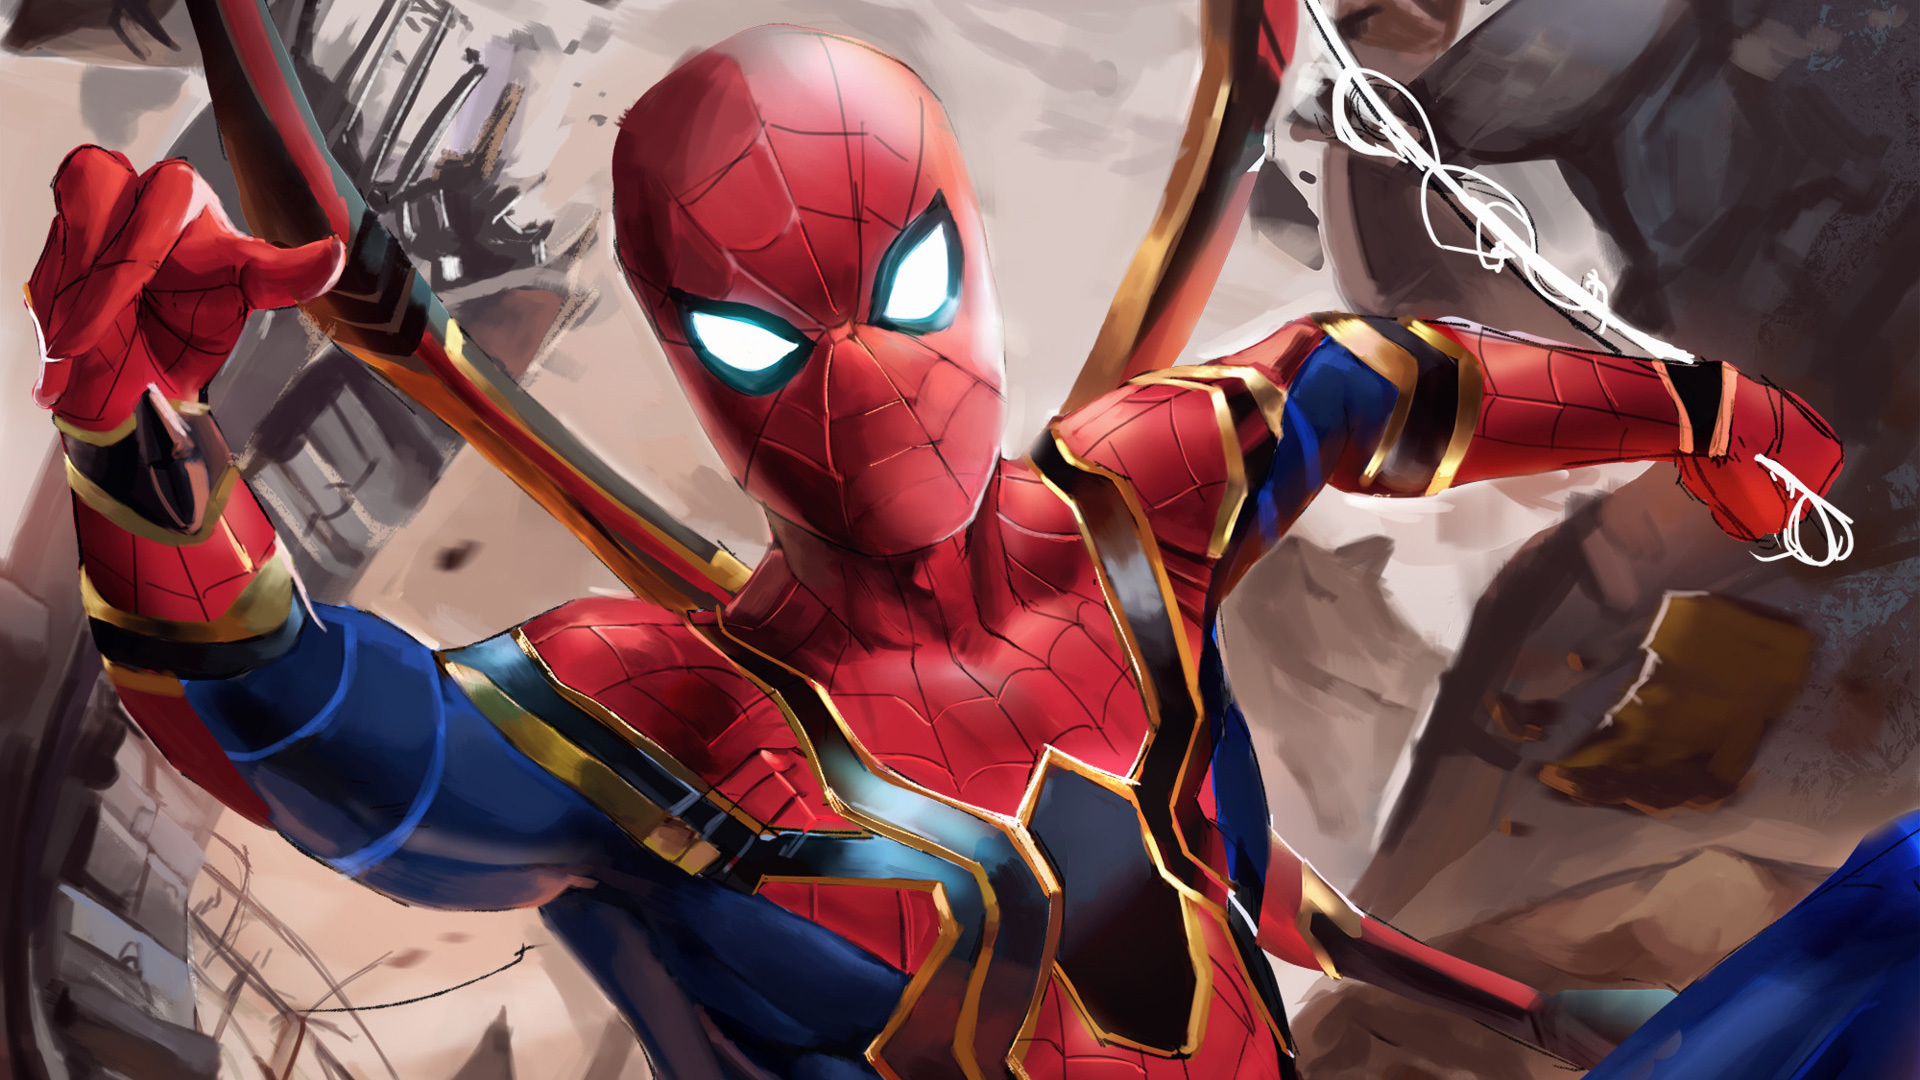 Download 1920x1080 Wallpaper Iron Suit Spider Man Avengers